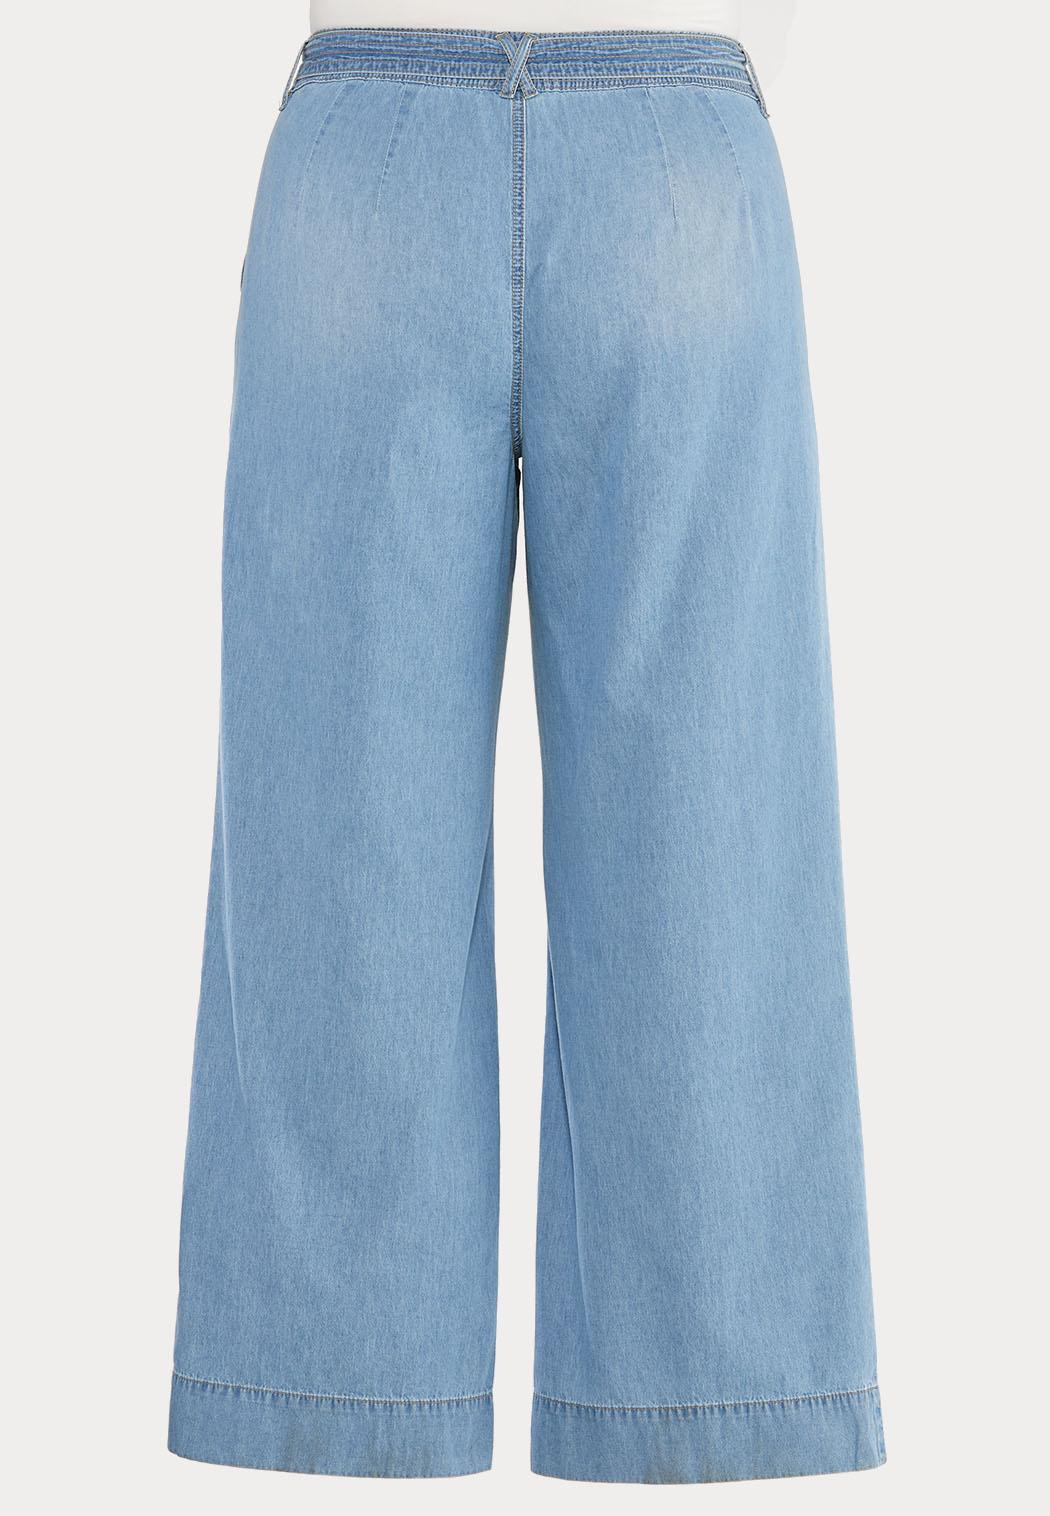 Plus Size Belted Light Wash Jeans (Item #44472893)